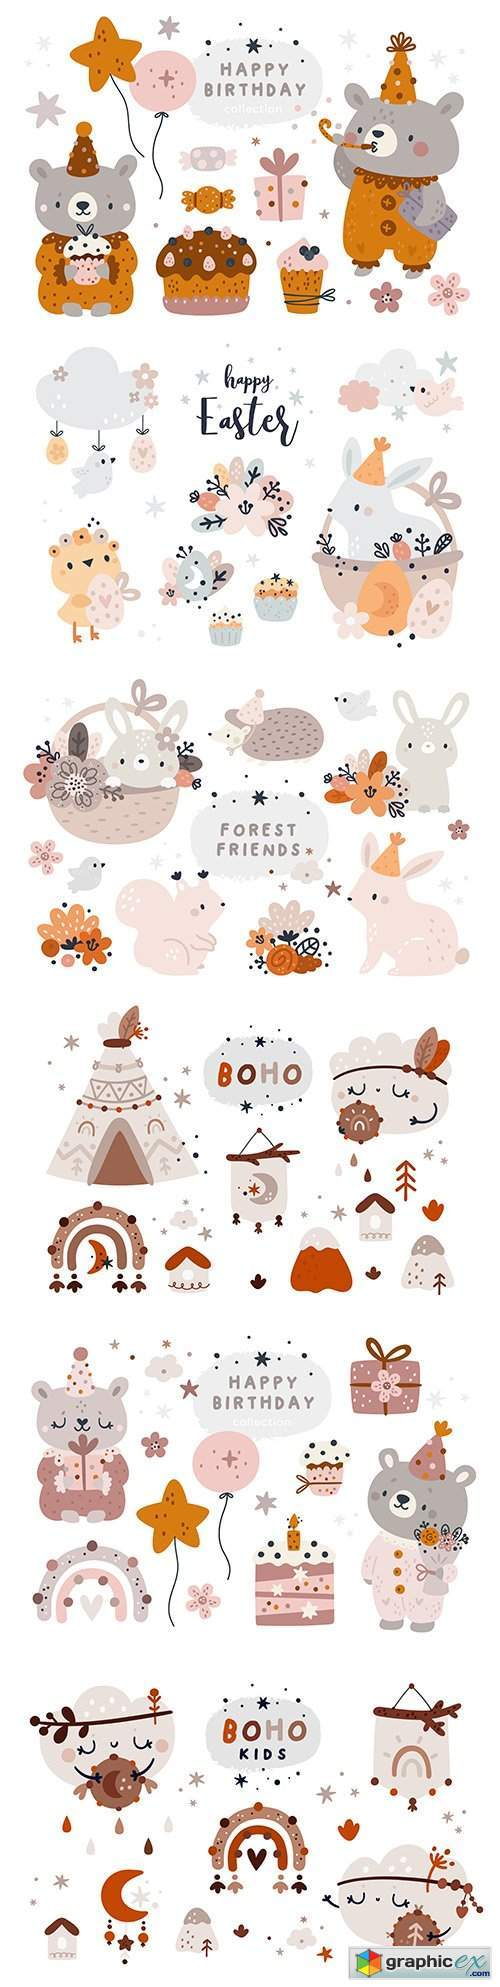 Cute animal design elements in Scandinavian and boho style